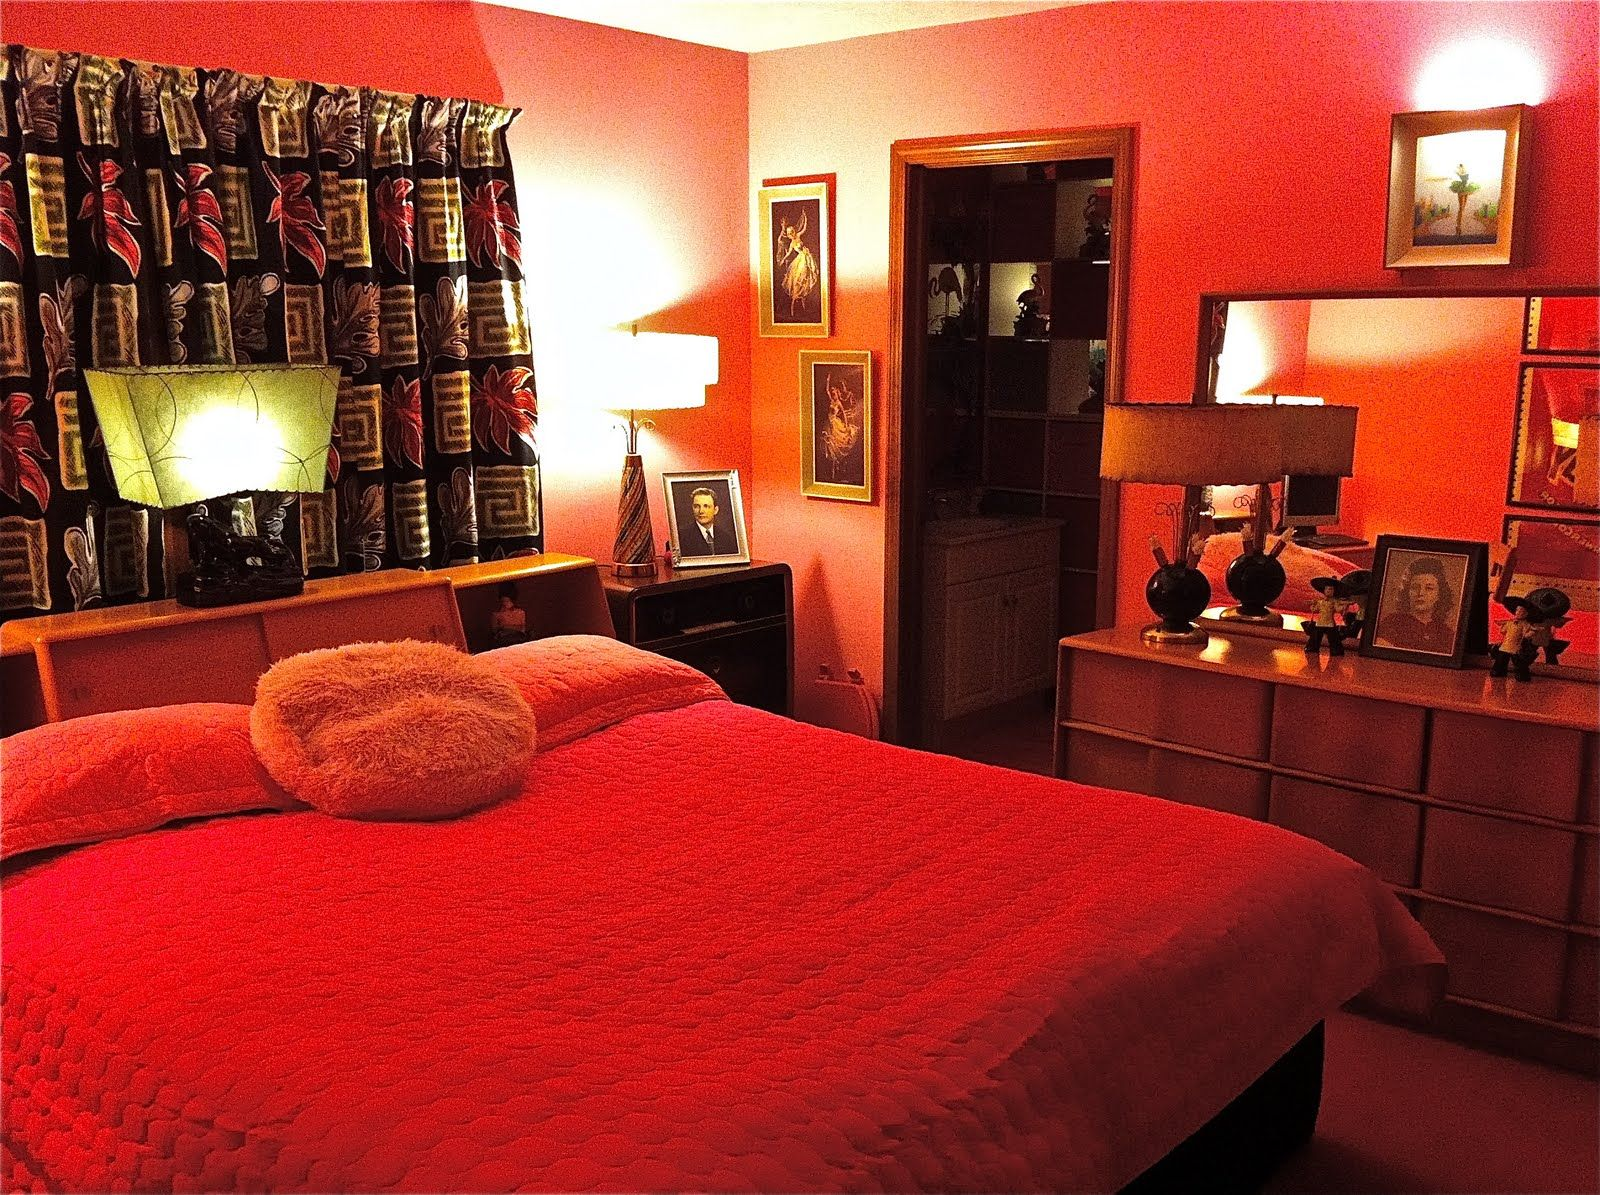 Pink bedroom decoration - Images Red Room Bedrooms Hot Pink Images Red Room Bedrooms Hot Pink Fulton